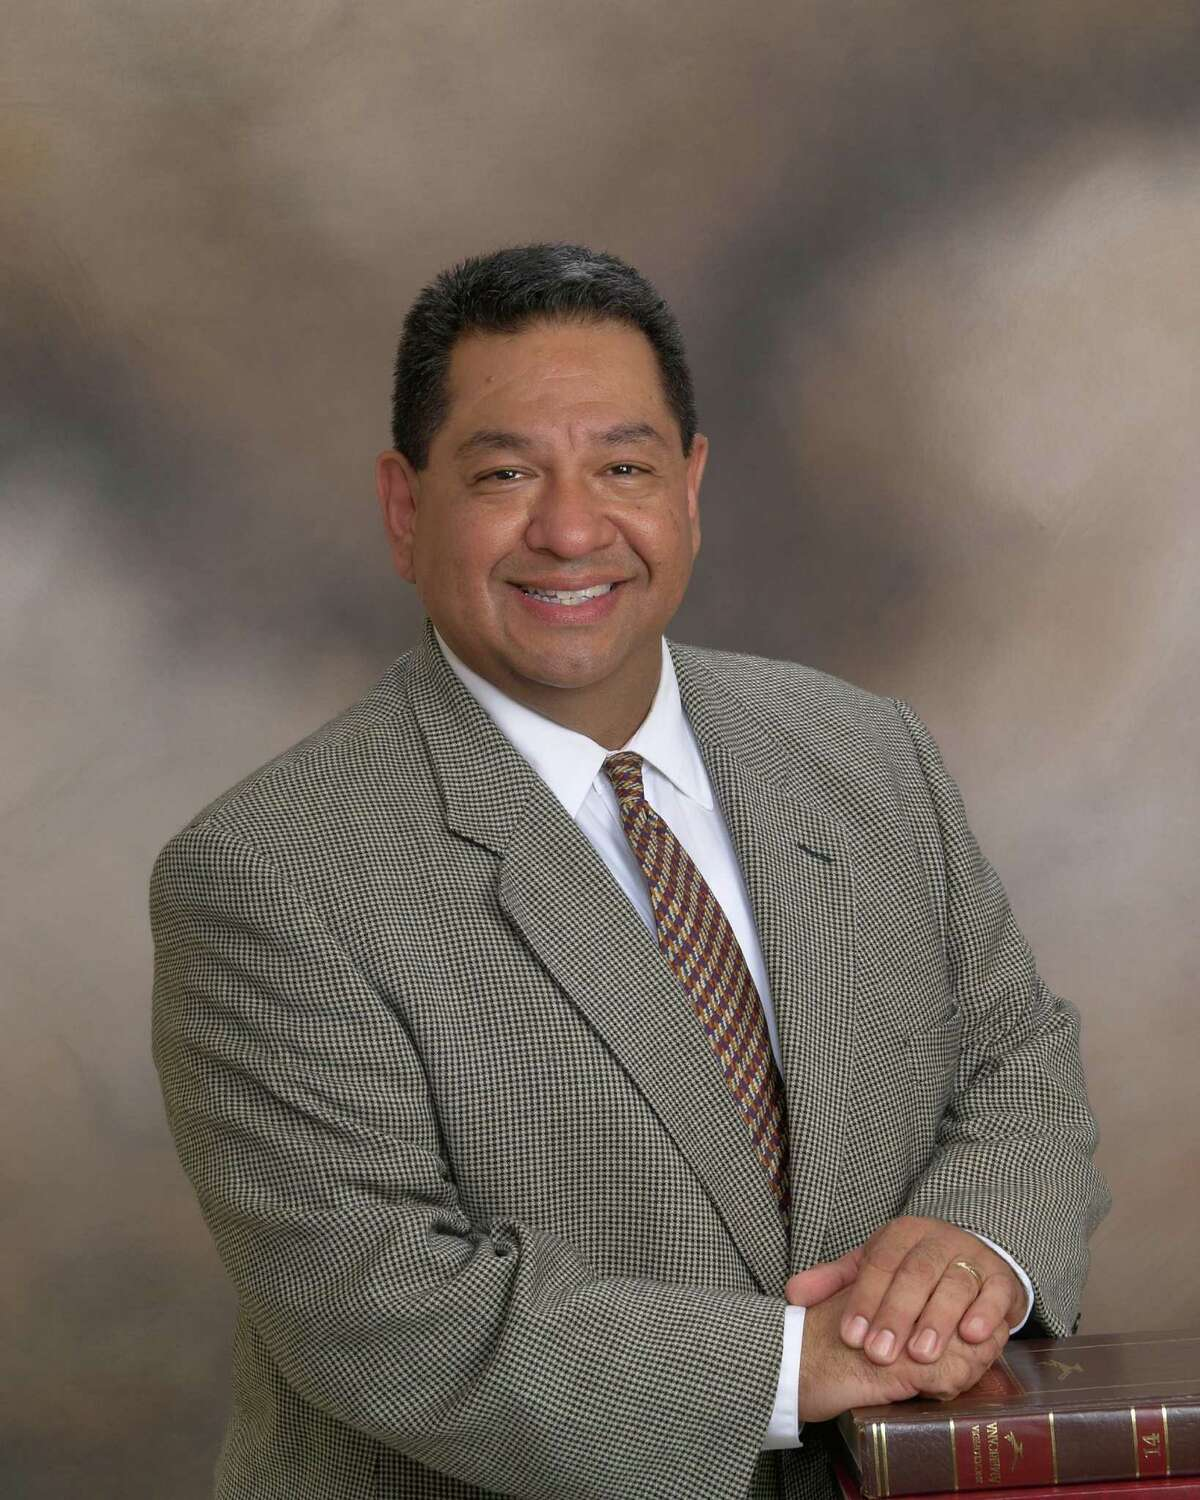 David L. Rosa, GOP candidate for U.S. House District 20. Courtesy